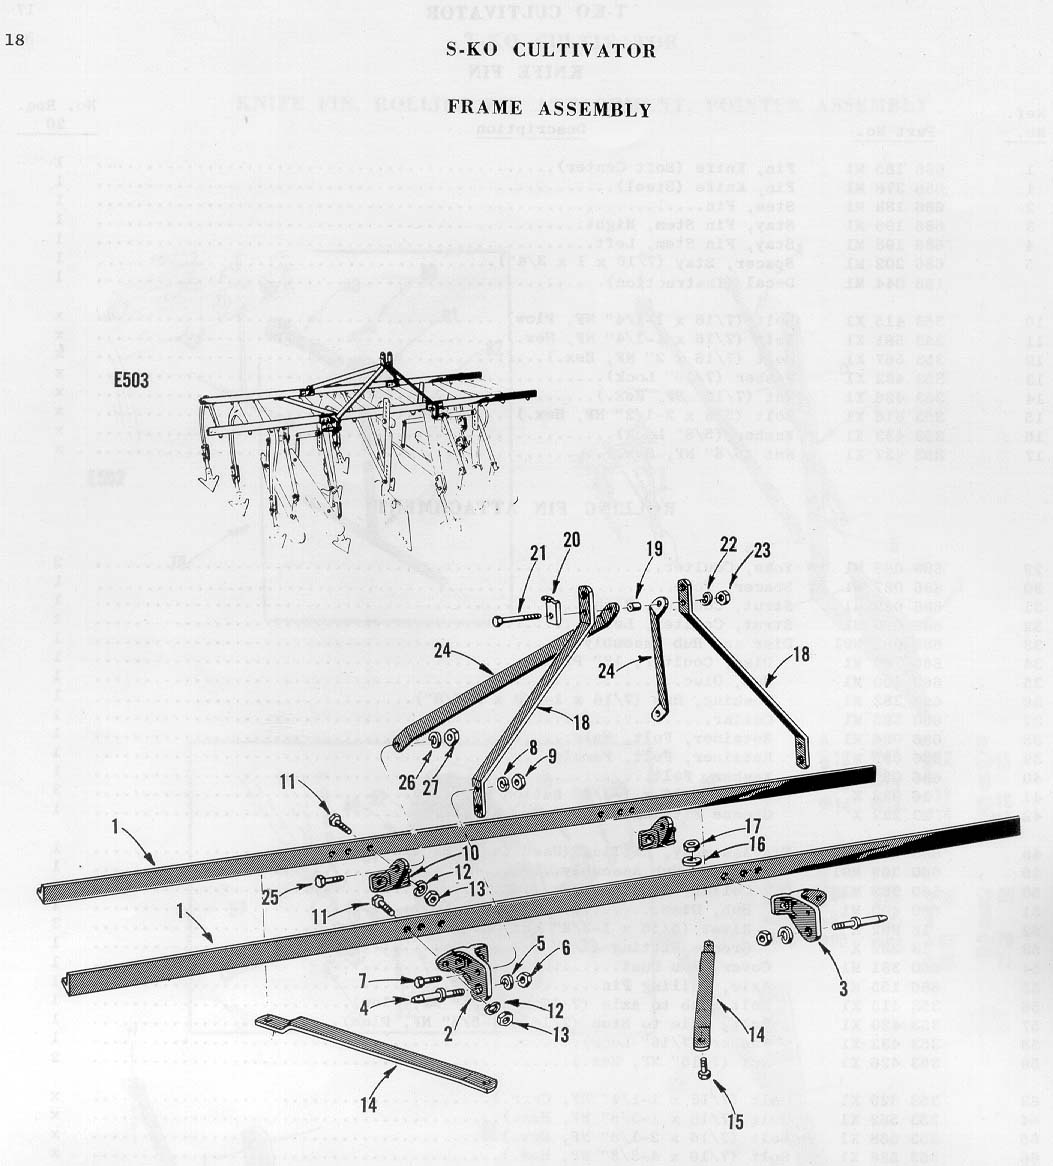 Replyfergusoncultivatordealer Parts Manual Posted Ford Diagrams Dealer On In Reply To Ferguson S Ko Cultivator